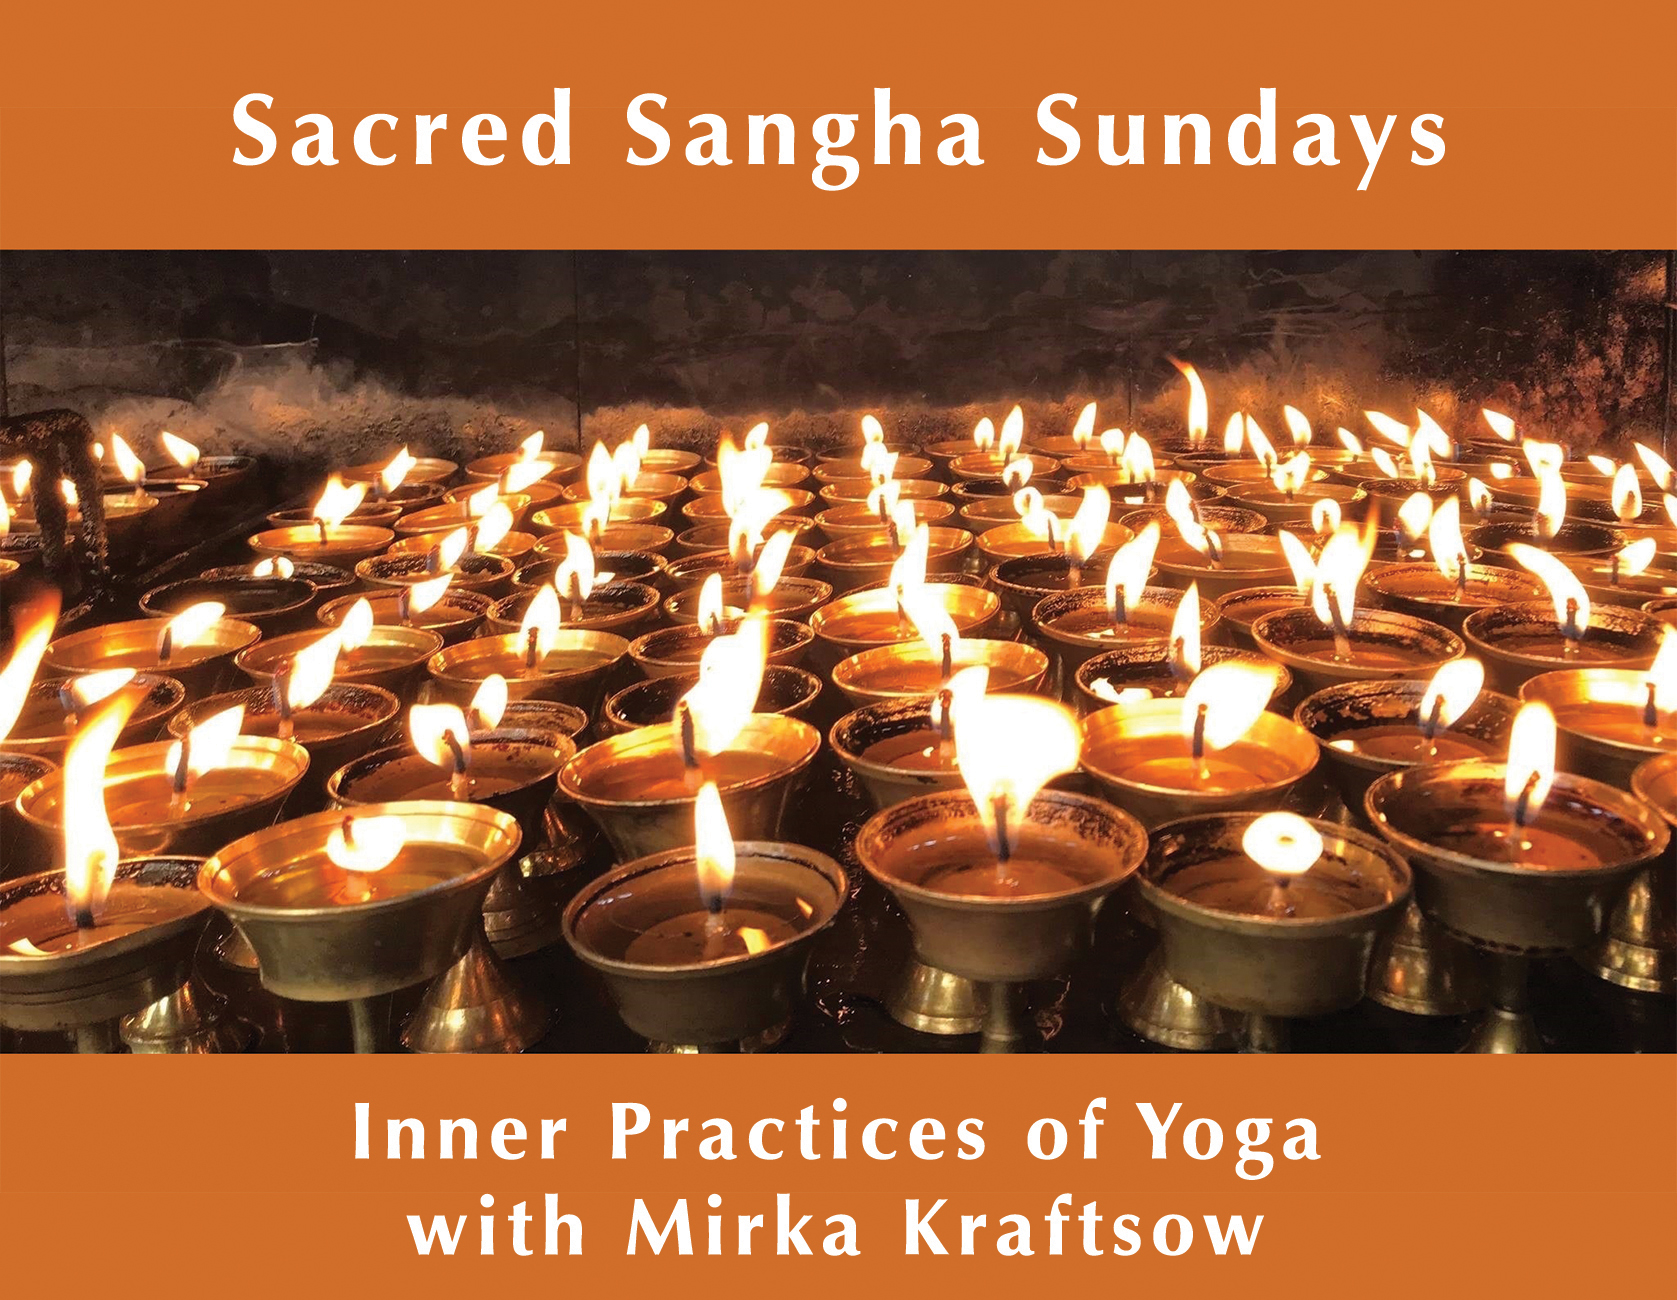 Viniyoga Vedic Study Retreats Sebastopol Sonoma SF Bay Area